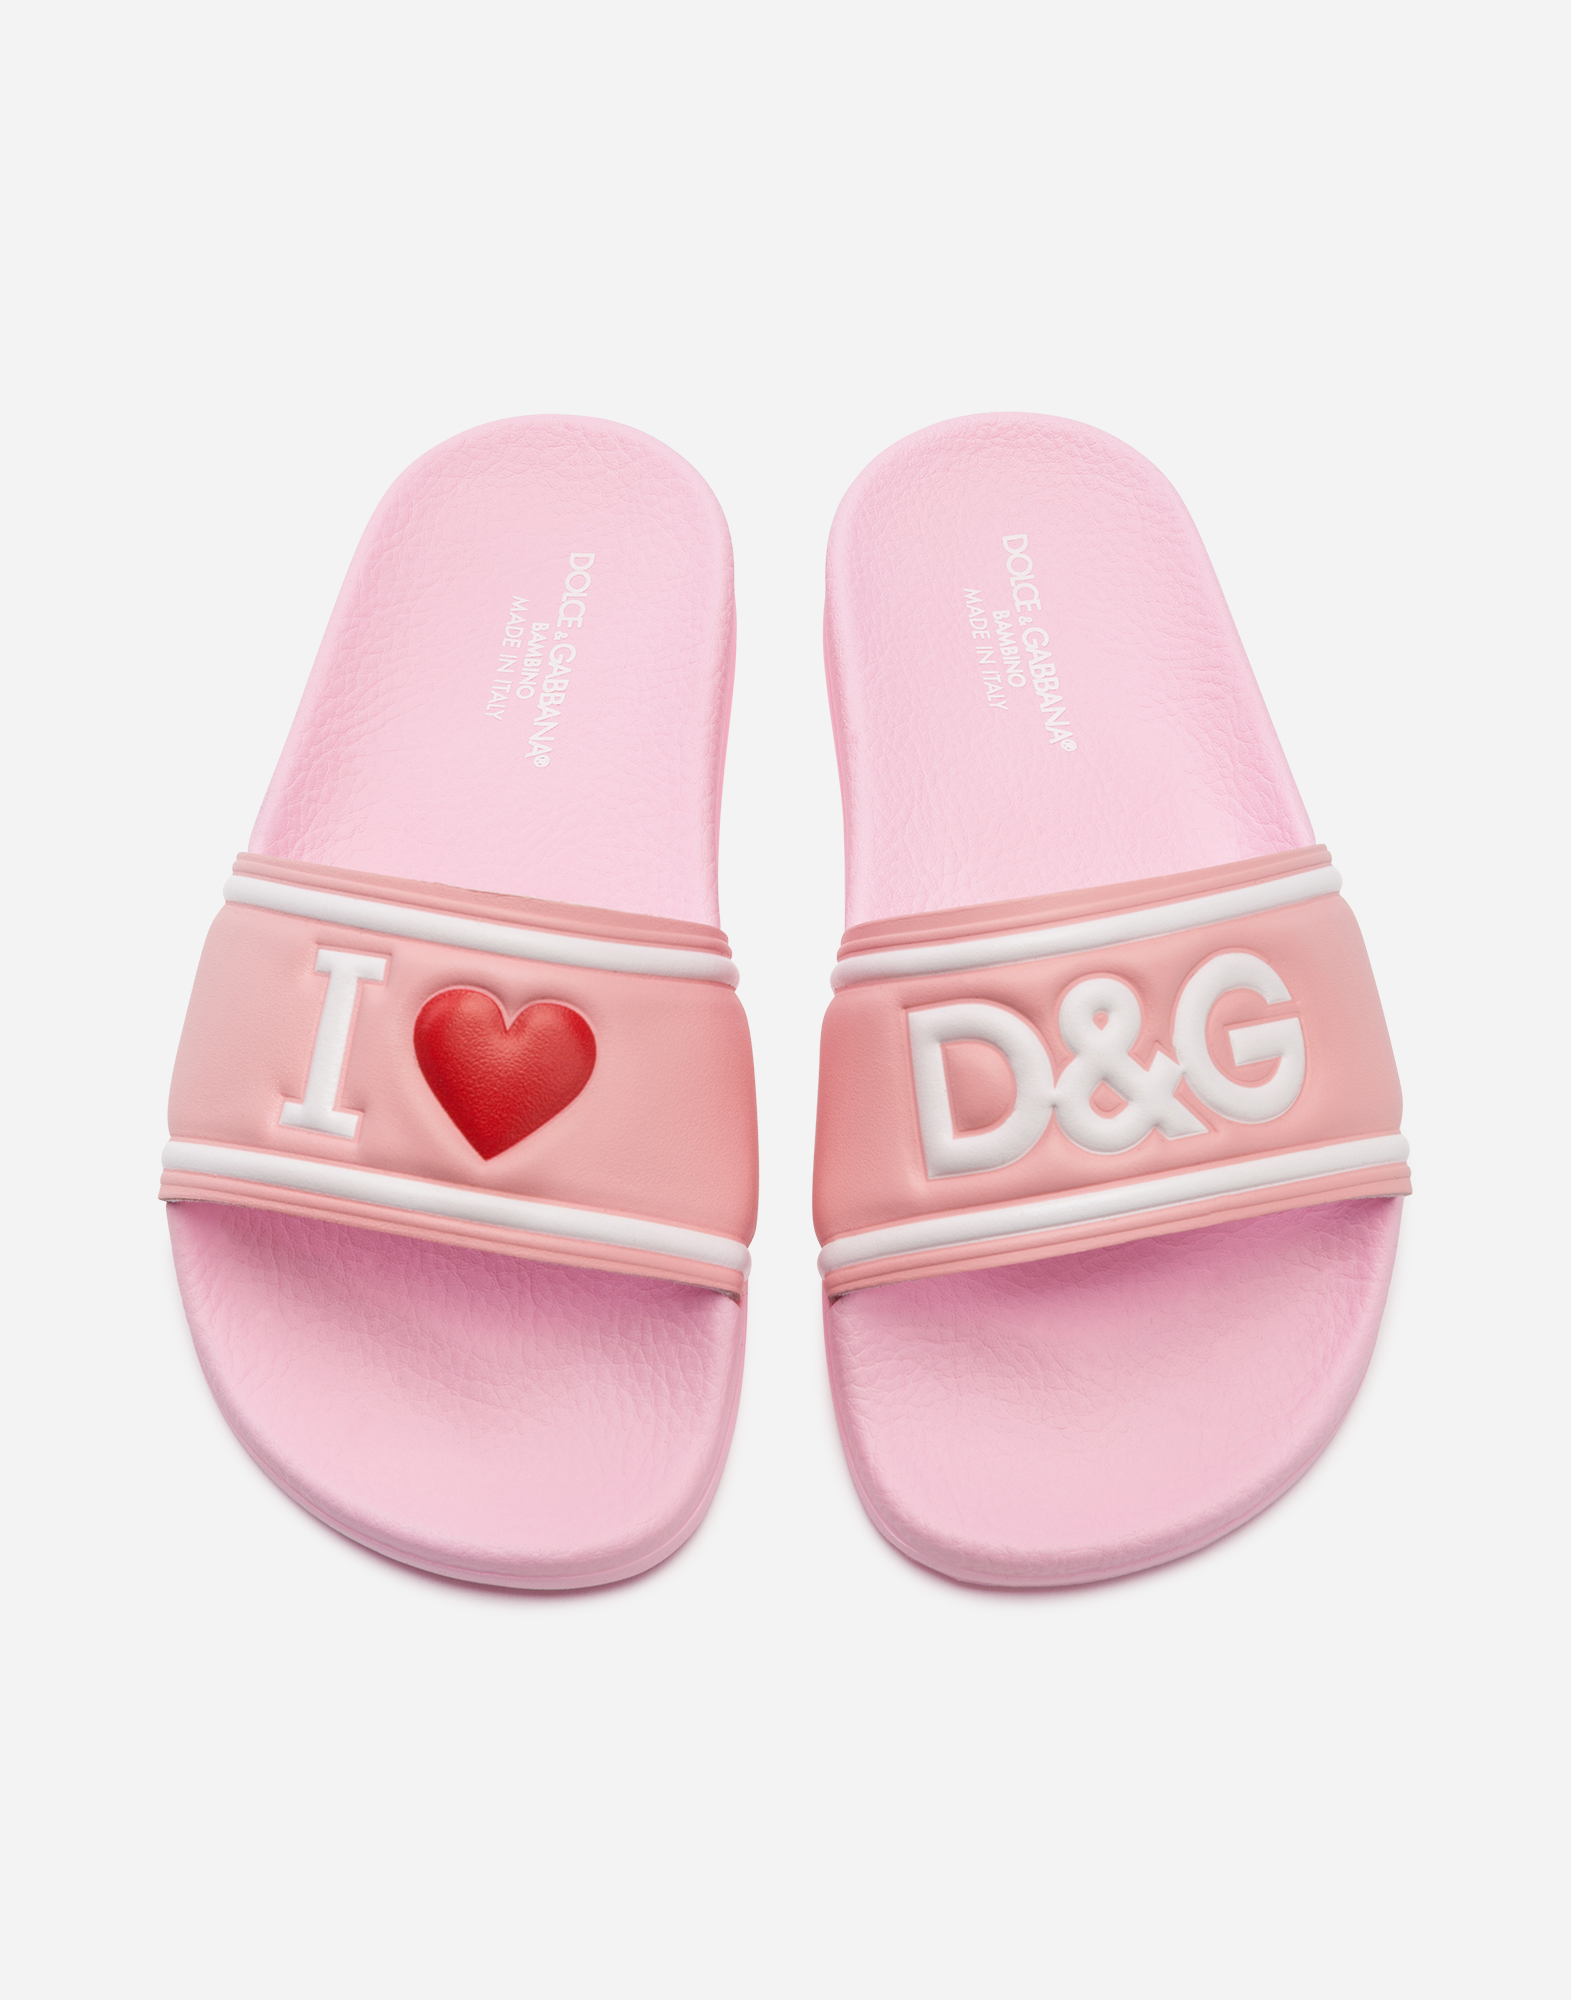 Dolce & Gabbana PRINTED RUBBER SLIPPERS